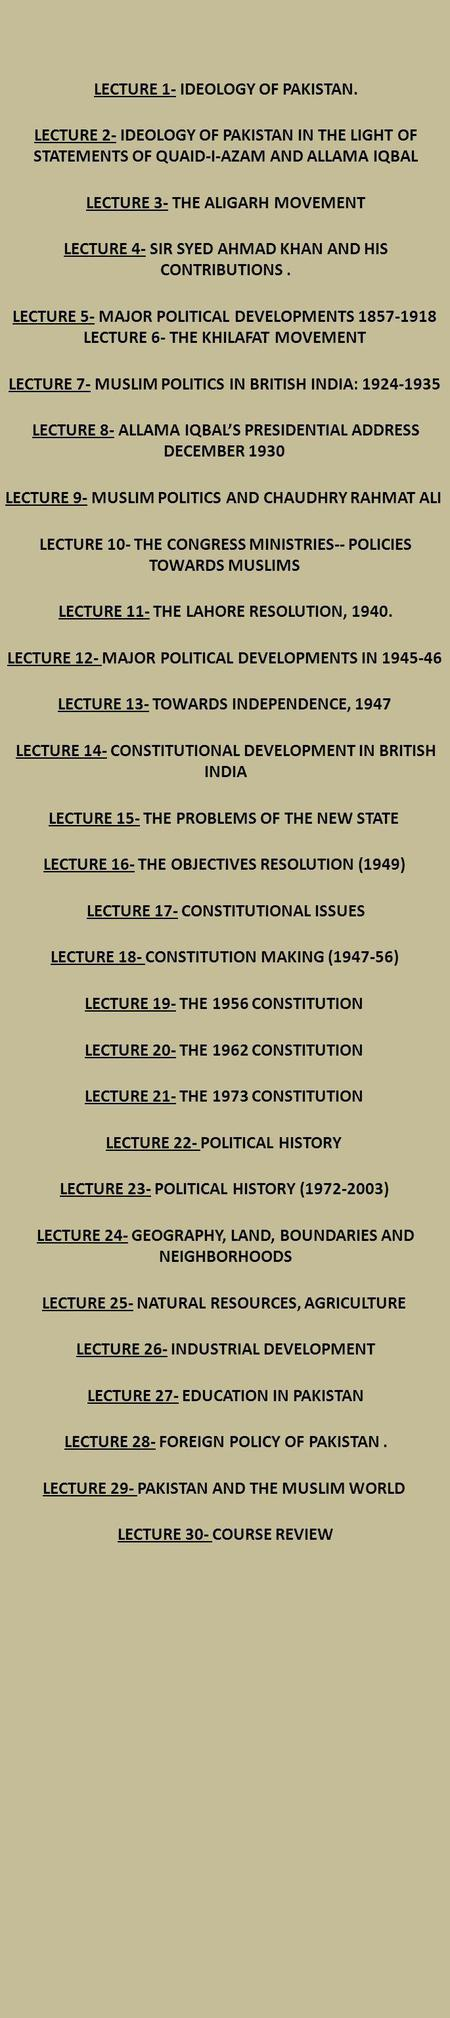 LECTURE 1- IDEOLOGY OF PAKISTAN. LECTURE 2- IDEOLOGY OF PAKISTAN IN THE LIGHT OF STATEMENTS OF QUAID-I-AZAM AND ALLAMA IQBAL LECTURE 3- THE ALIGARH MOVEMENT.